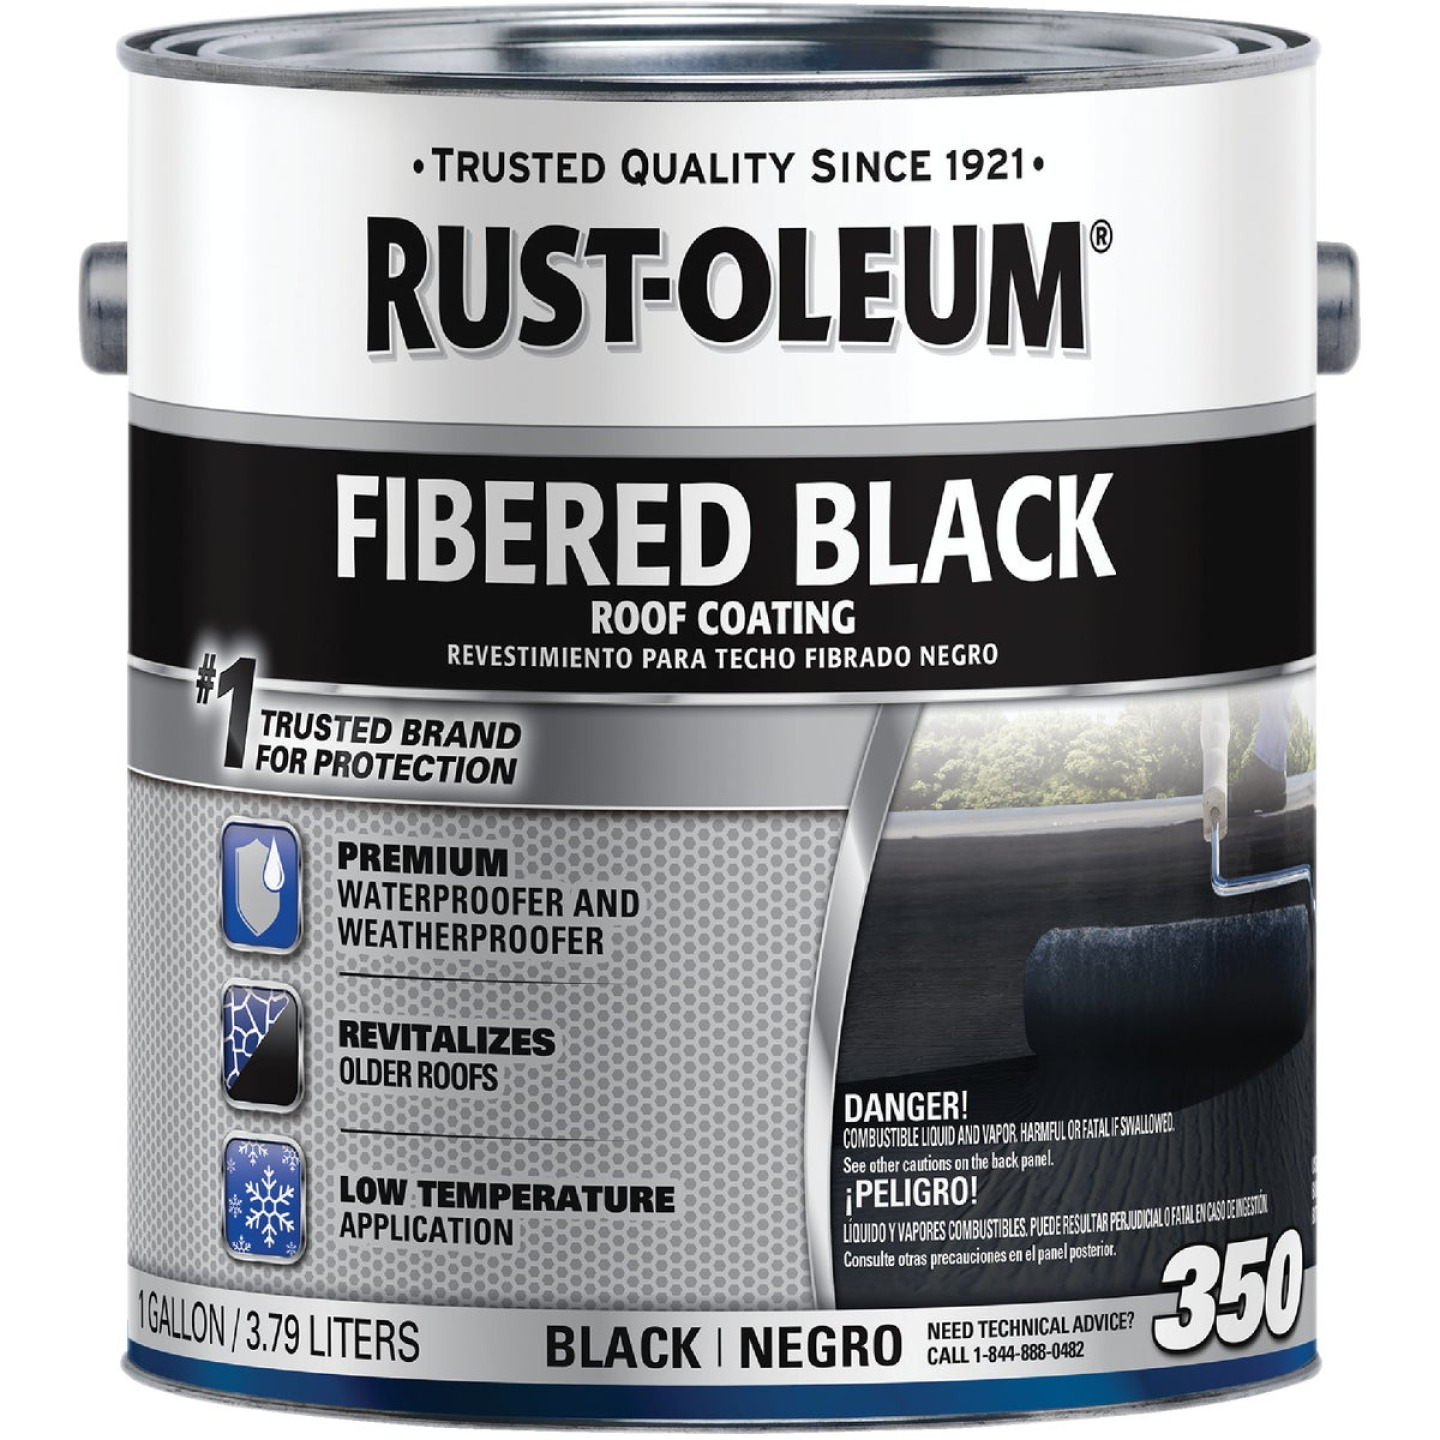 Rust-Oleum 350 1 Gal. Fibered Black Roof Coating Image 1